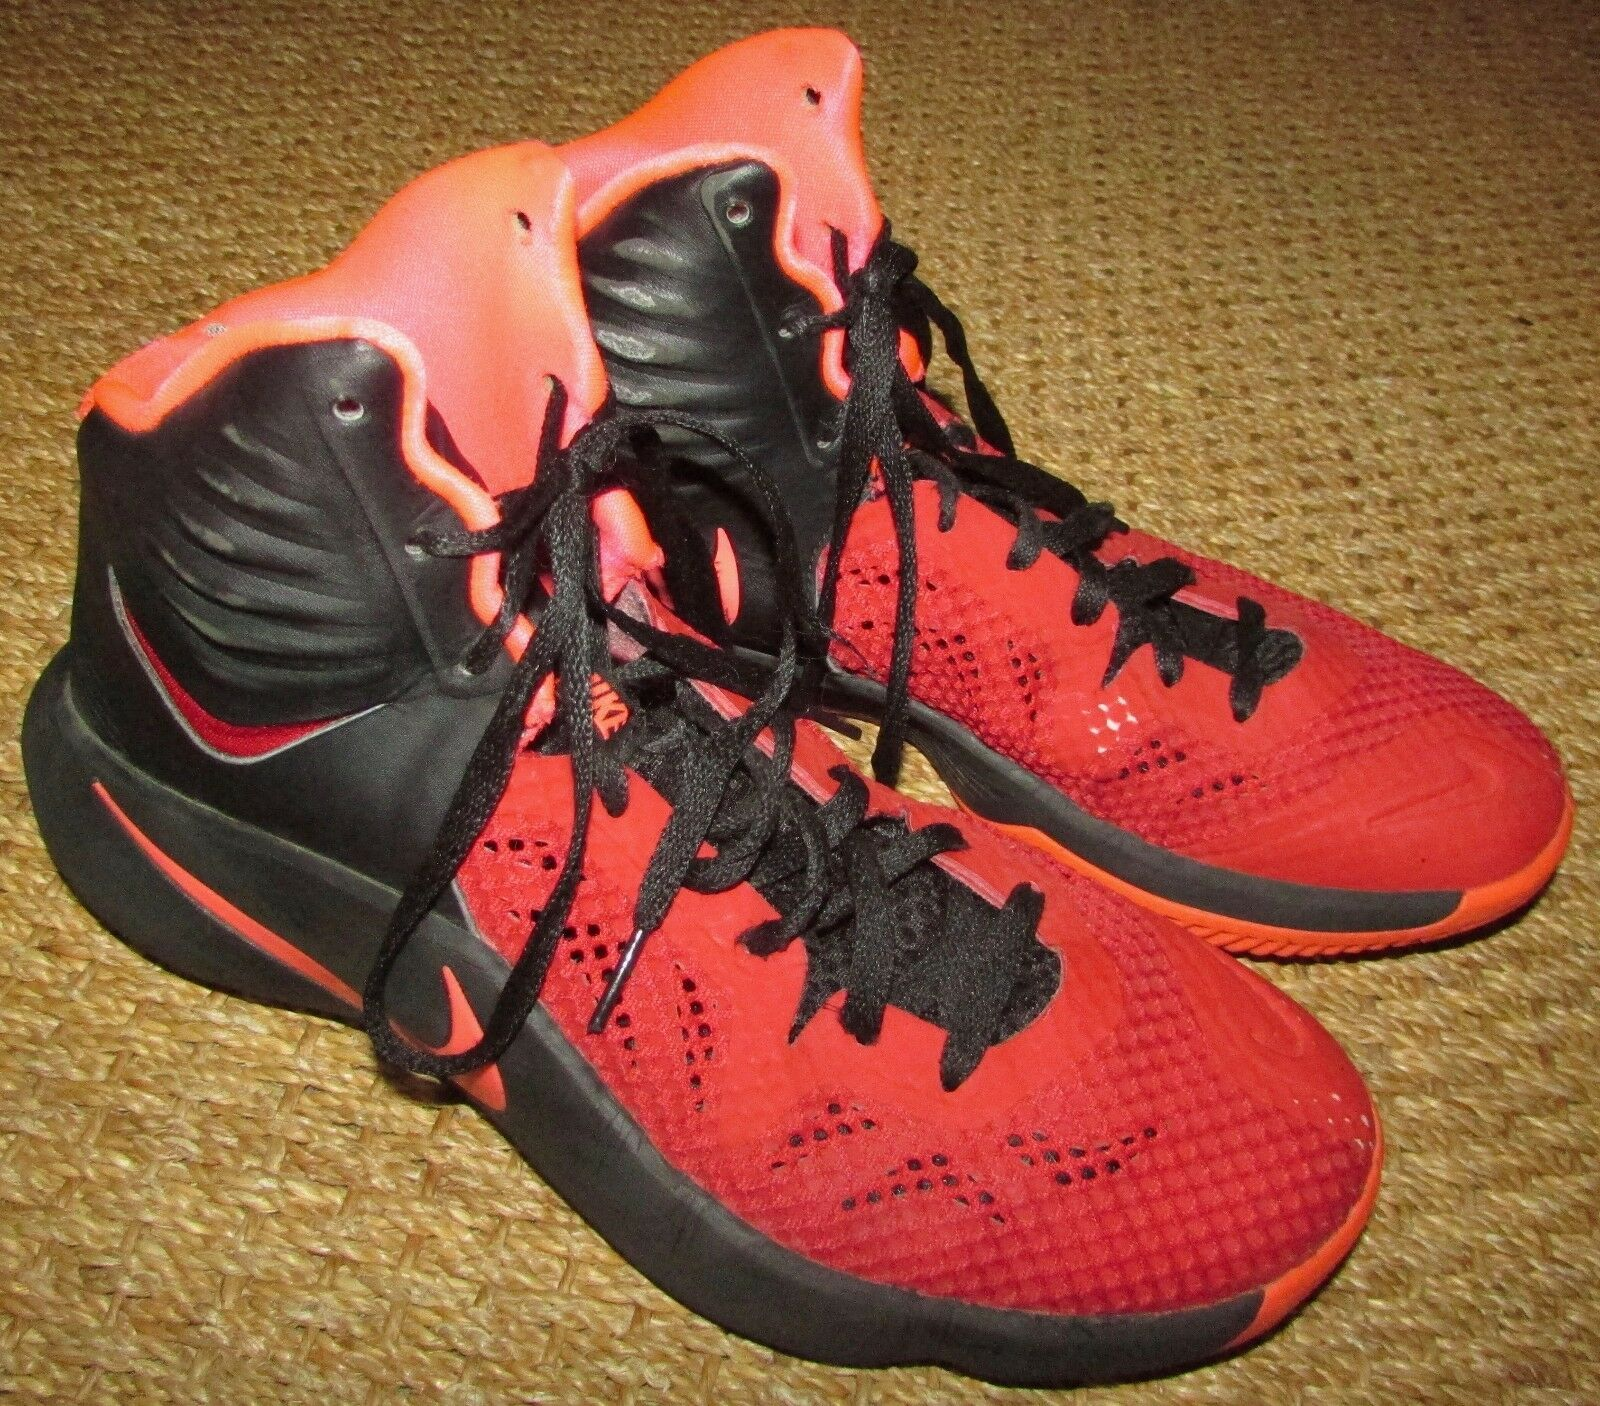 Nike Zoom Hyperfuse 2014 Mens Basketball Shoes Black Red 684591-066 Comfortable